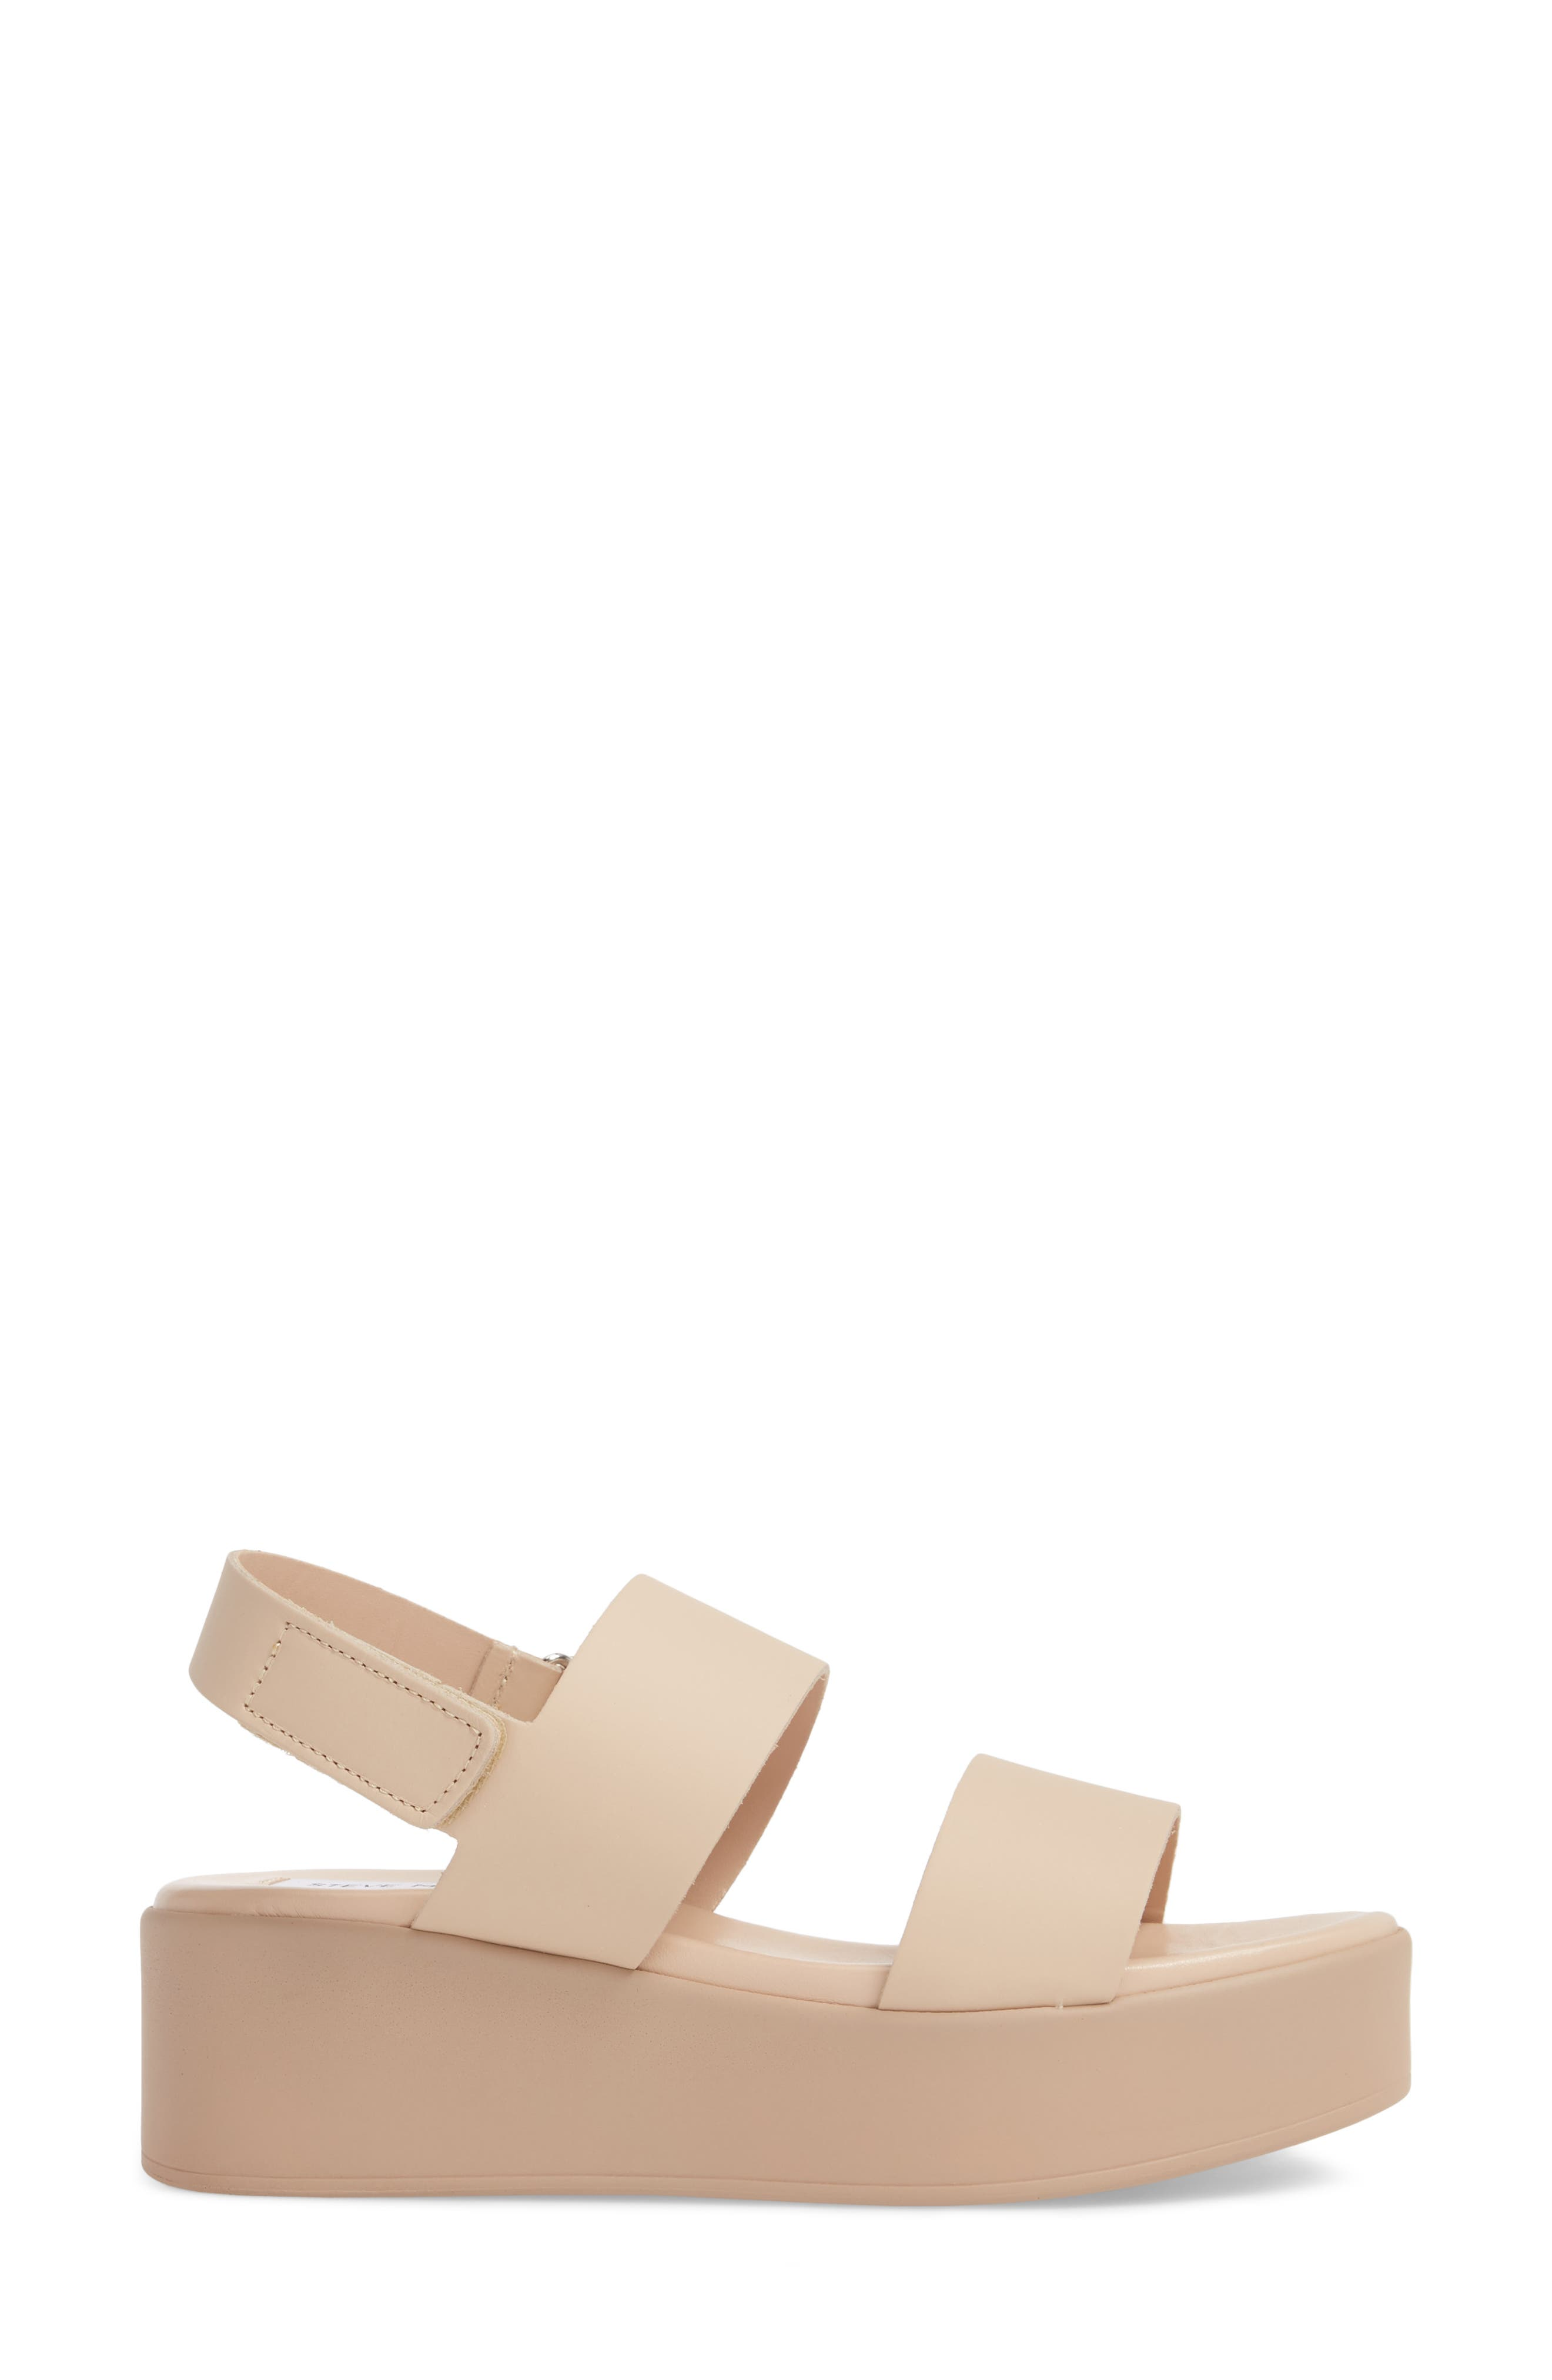 Rachel Platform Wedge Sandal,                             Alternate thumbnail 3, color,                             250